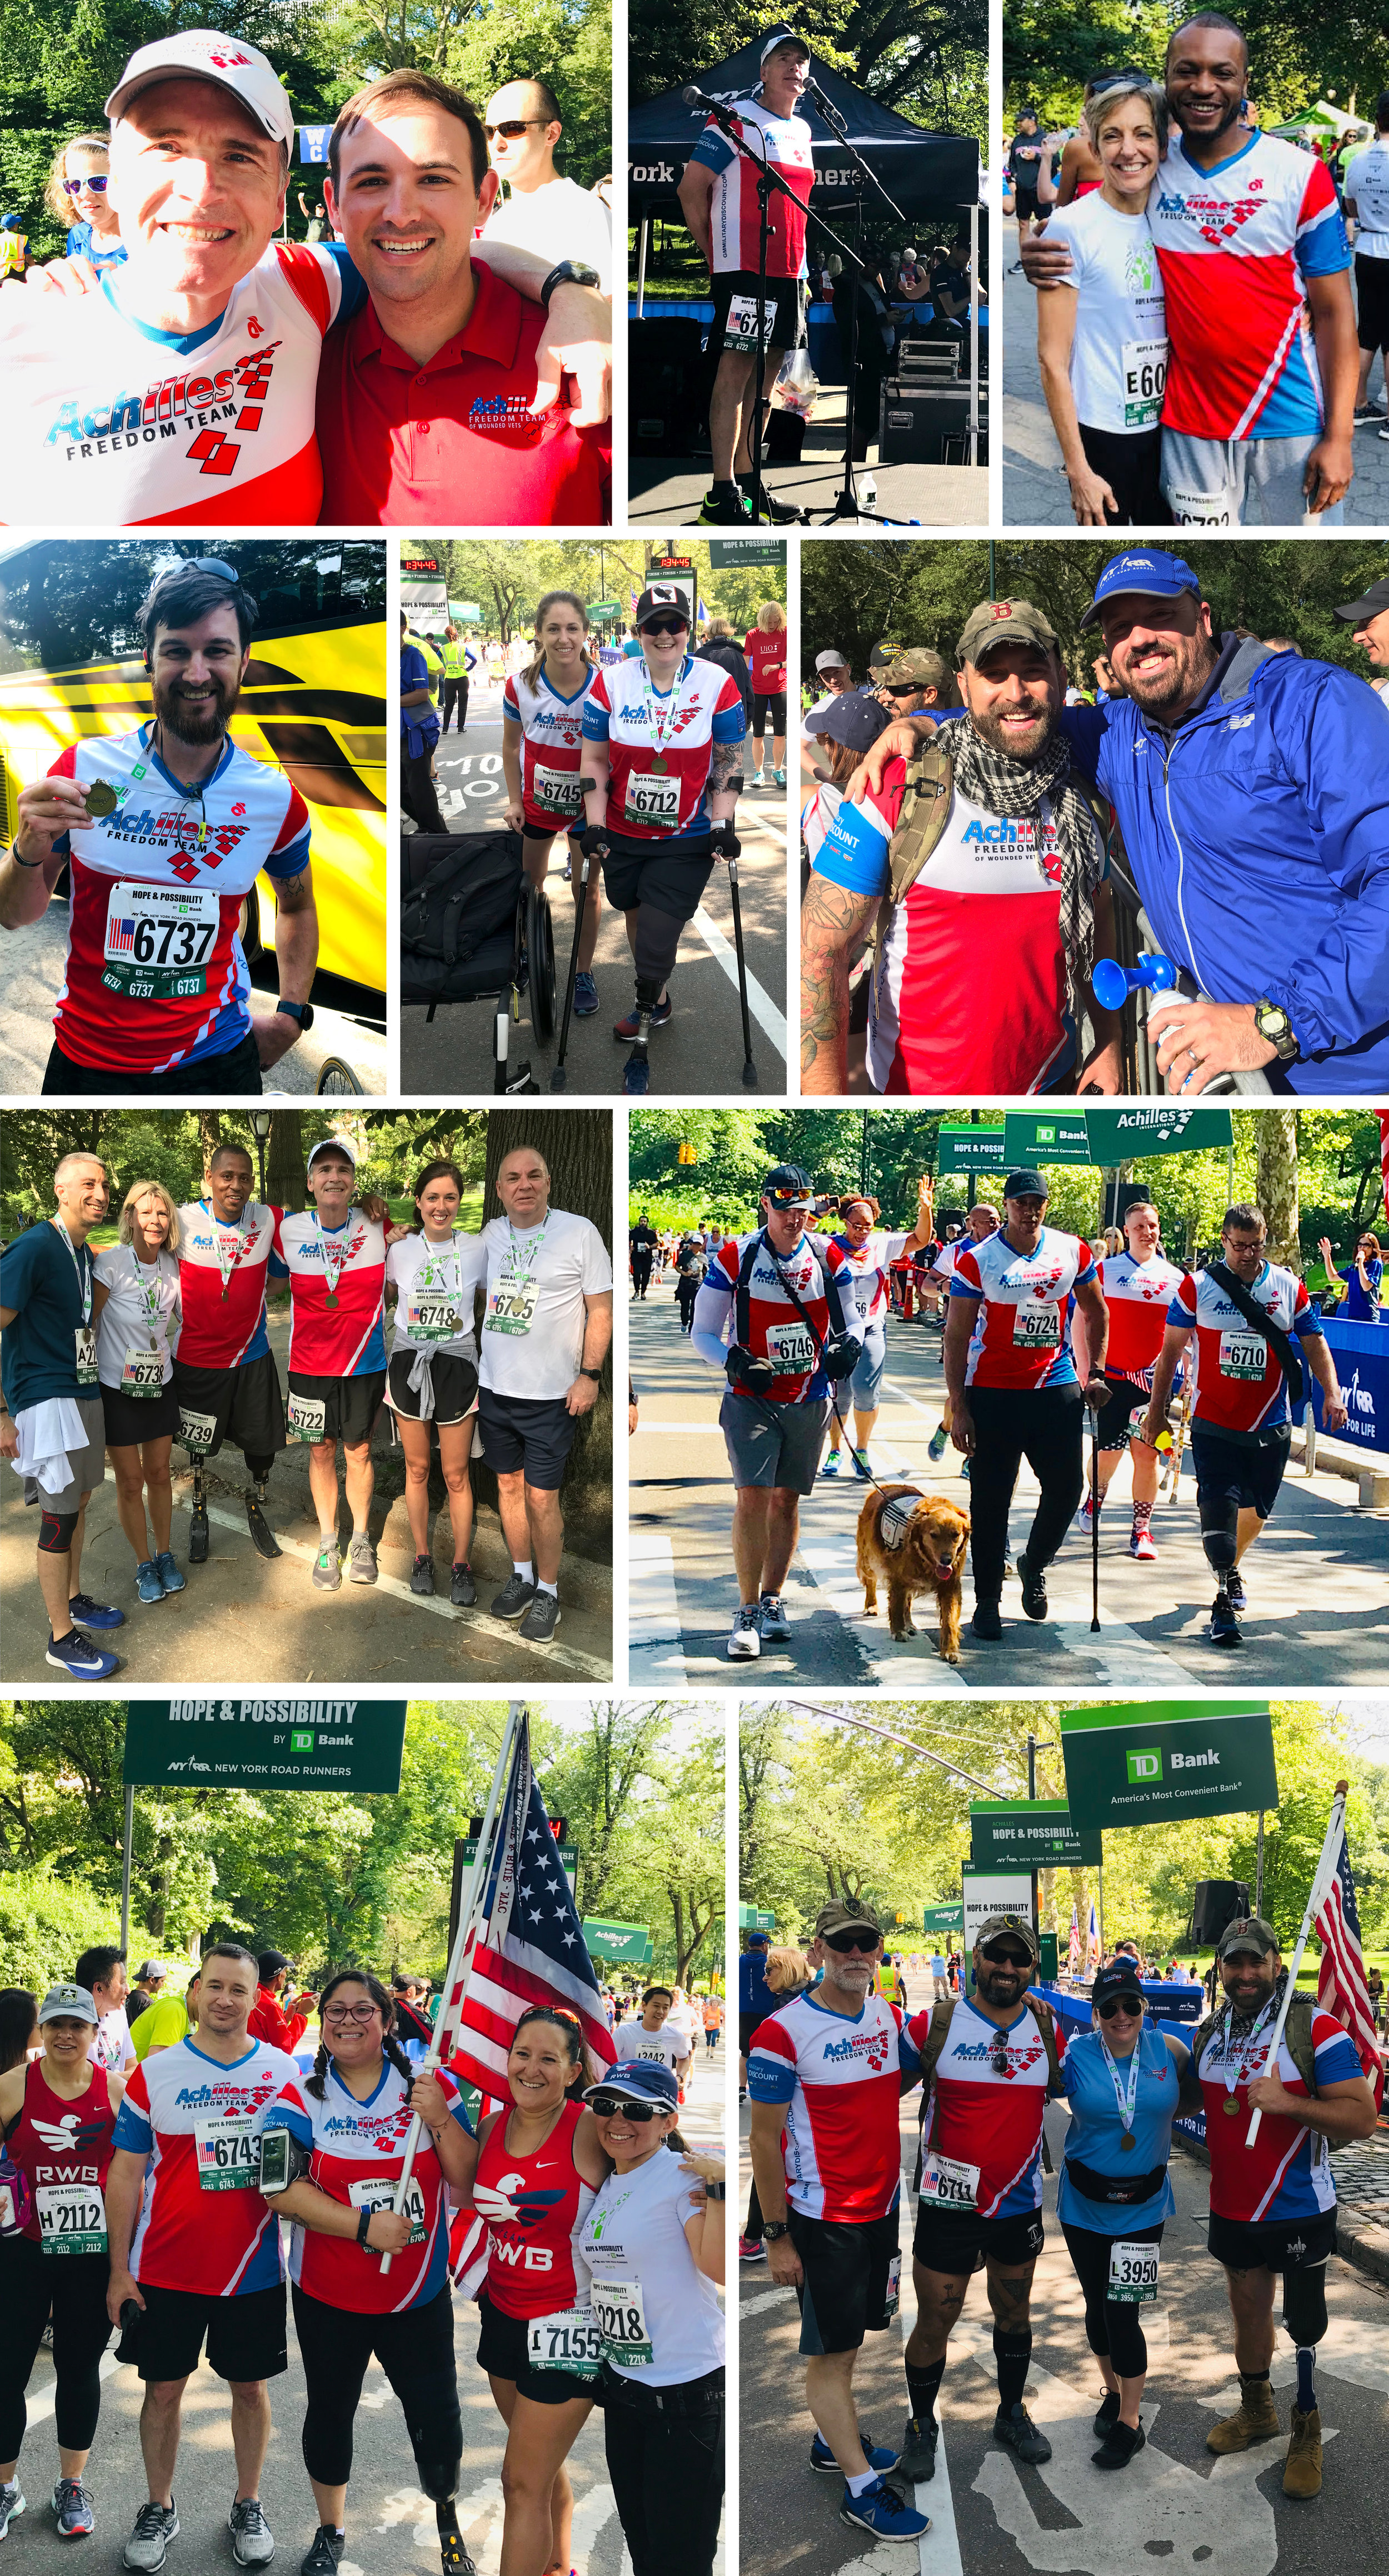 2019 FT HP Collage Race Day.jpg